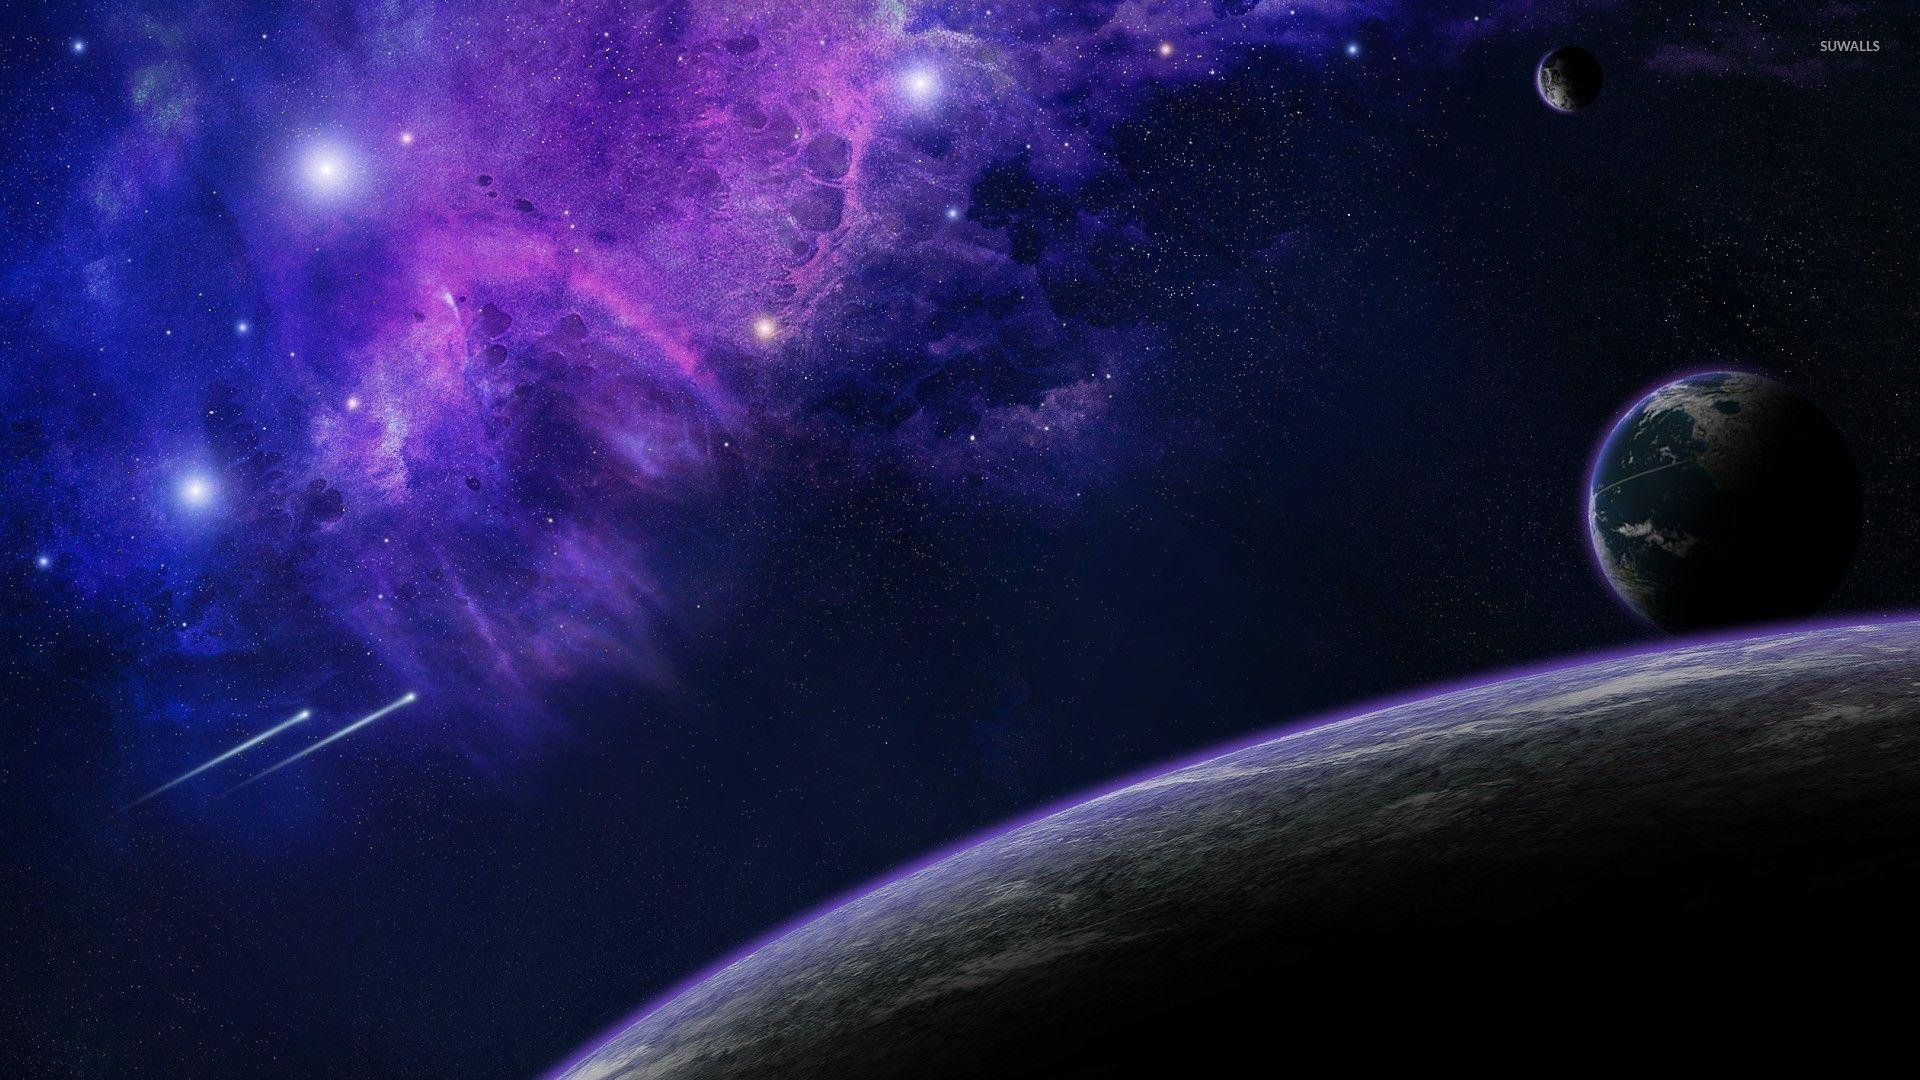 6 Awesome Cosmos Inspired Hd Wallpapers: Krypton Wallpapers